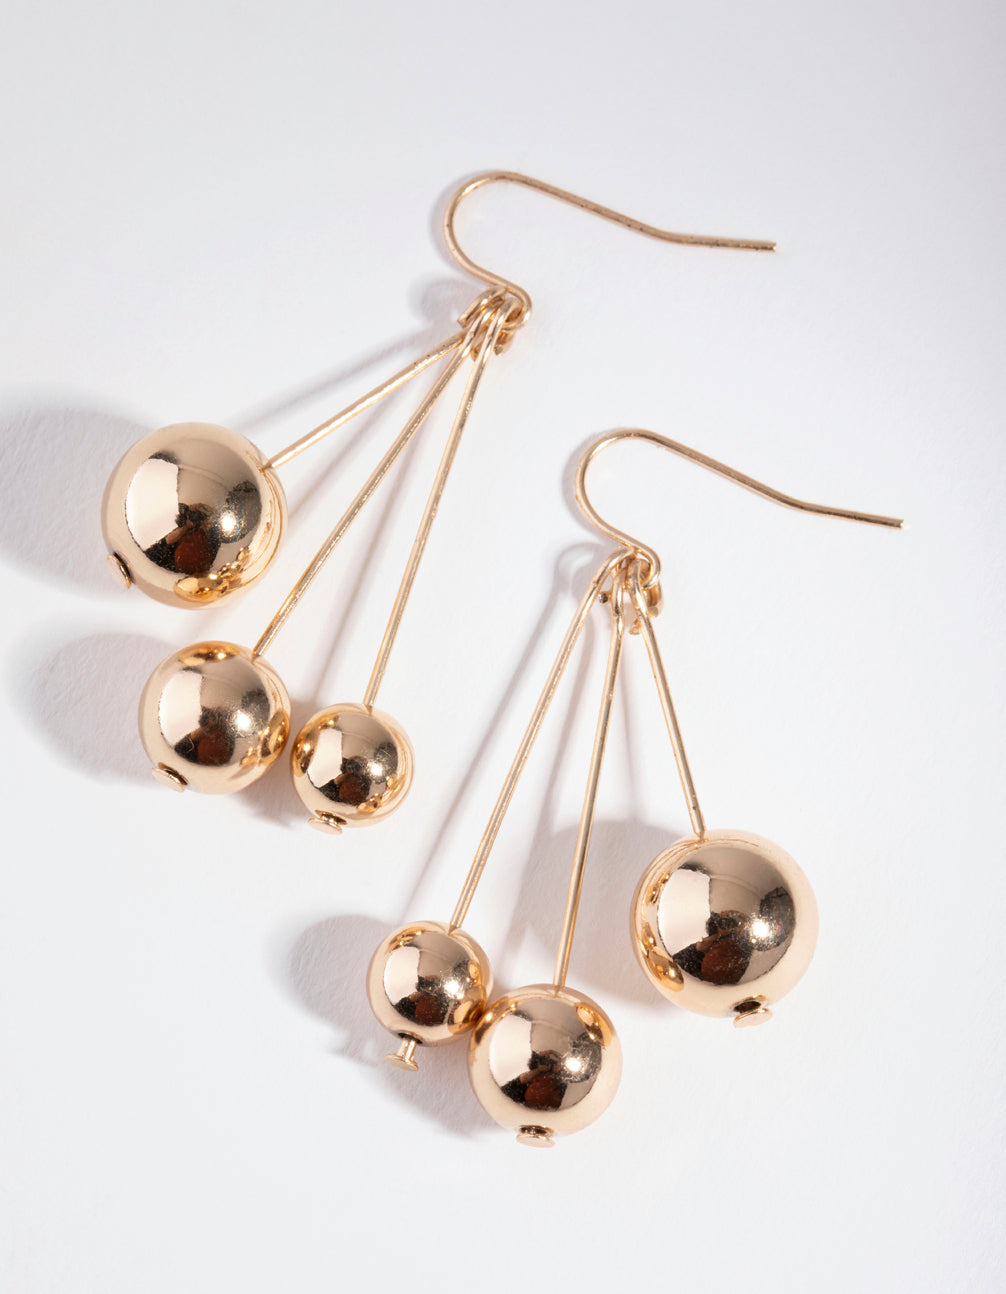 Gold Three-Ball Stick Drop Earrings